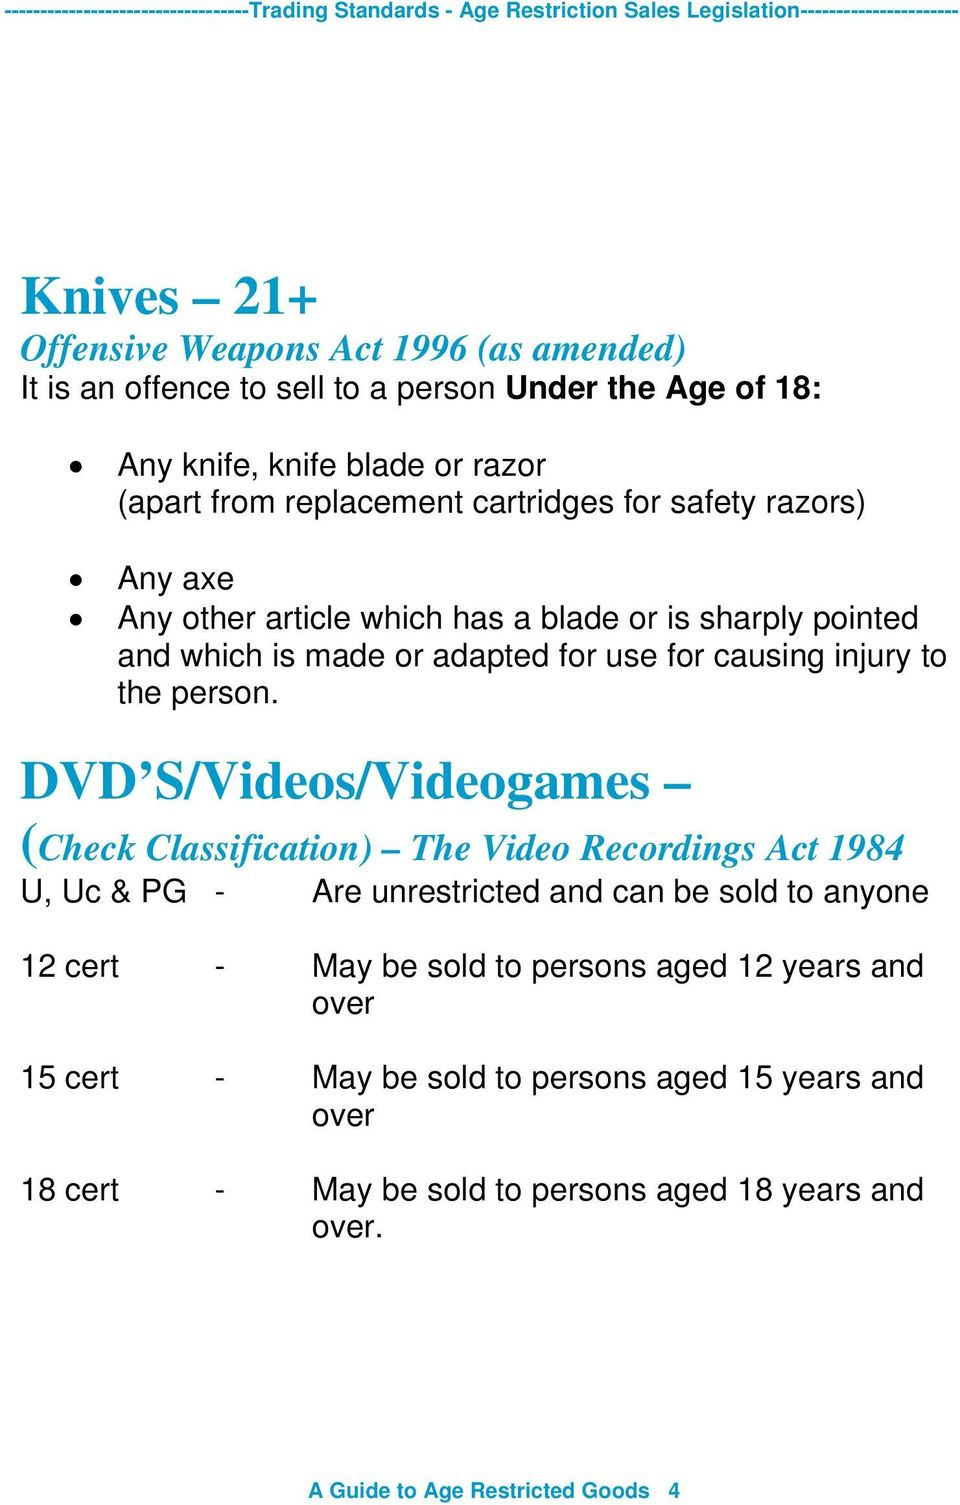 DVD S/Videos/Videogames (Check Classification) The Video Recordings Act 1984 U, Uc & PG - Are unrestricted and can be sold to anyone 12 cert - May be sold to persons